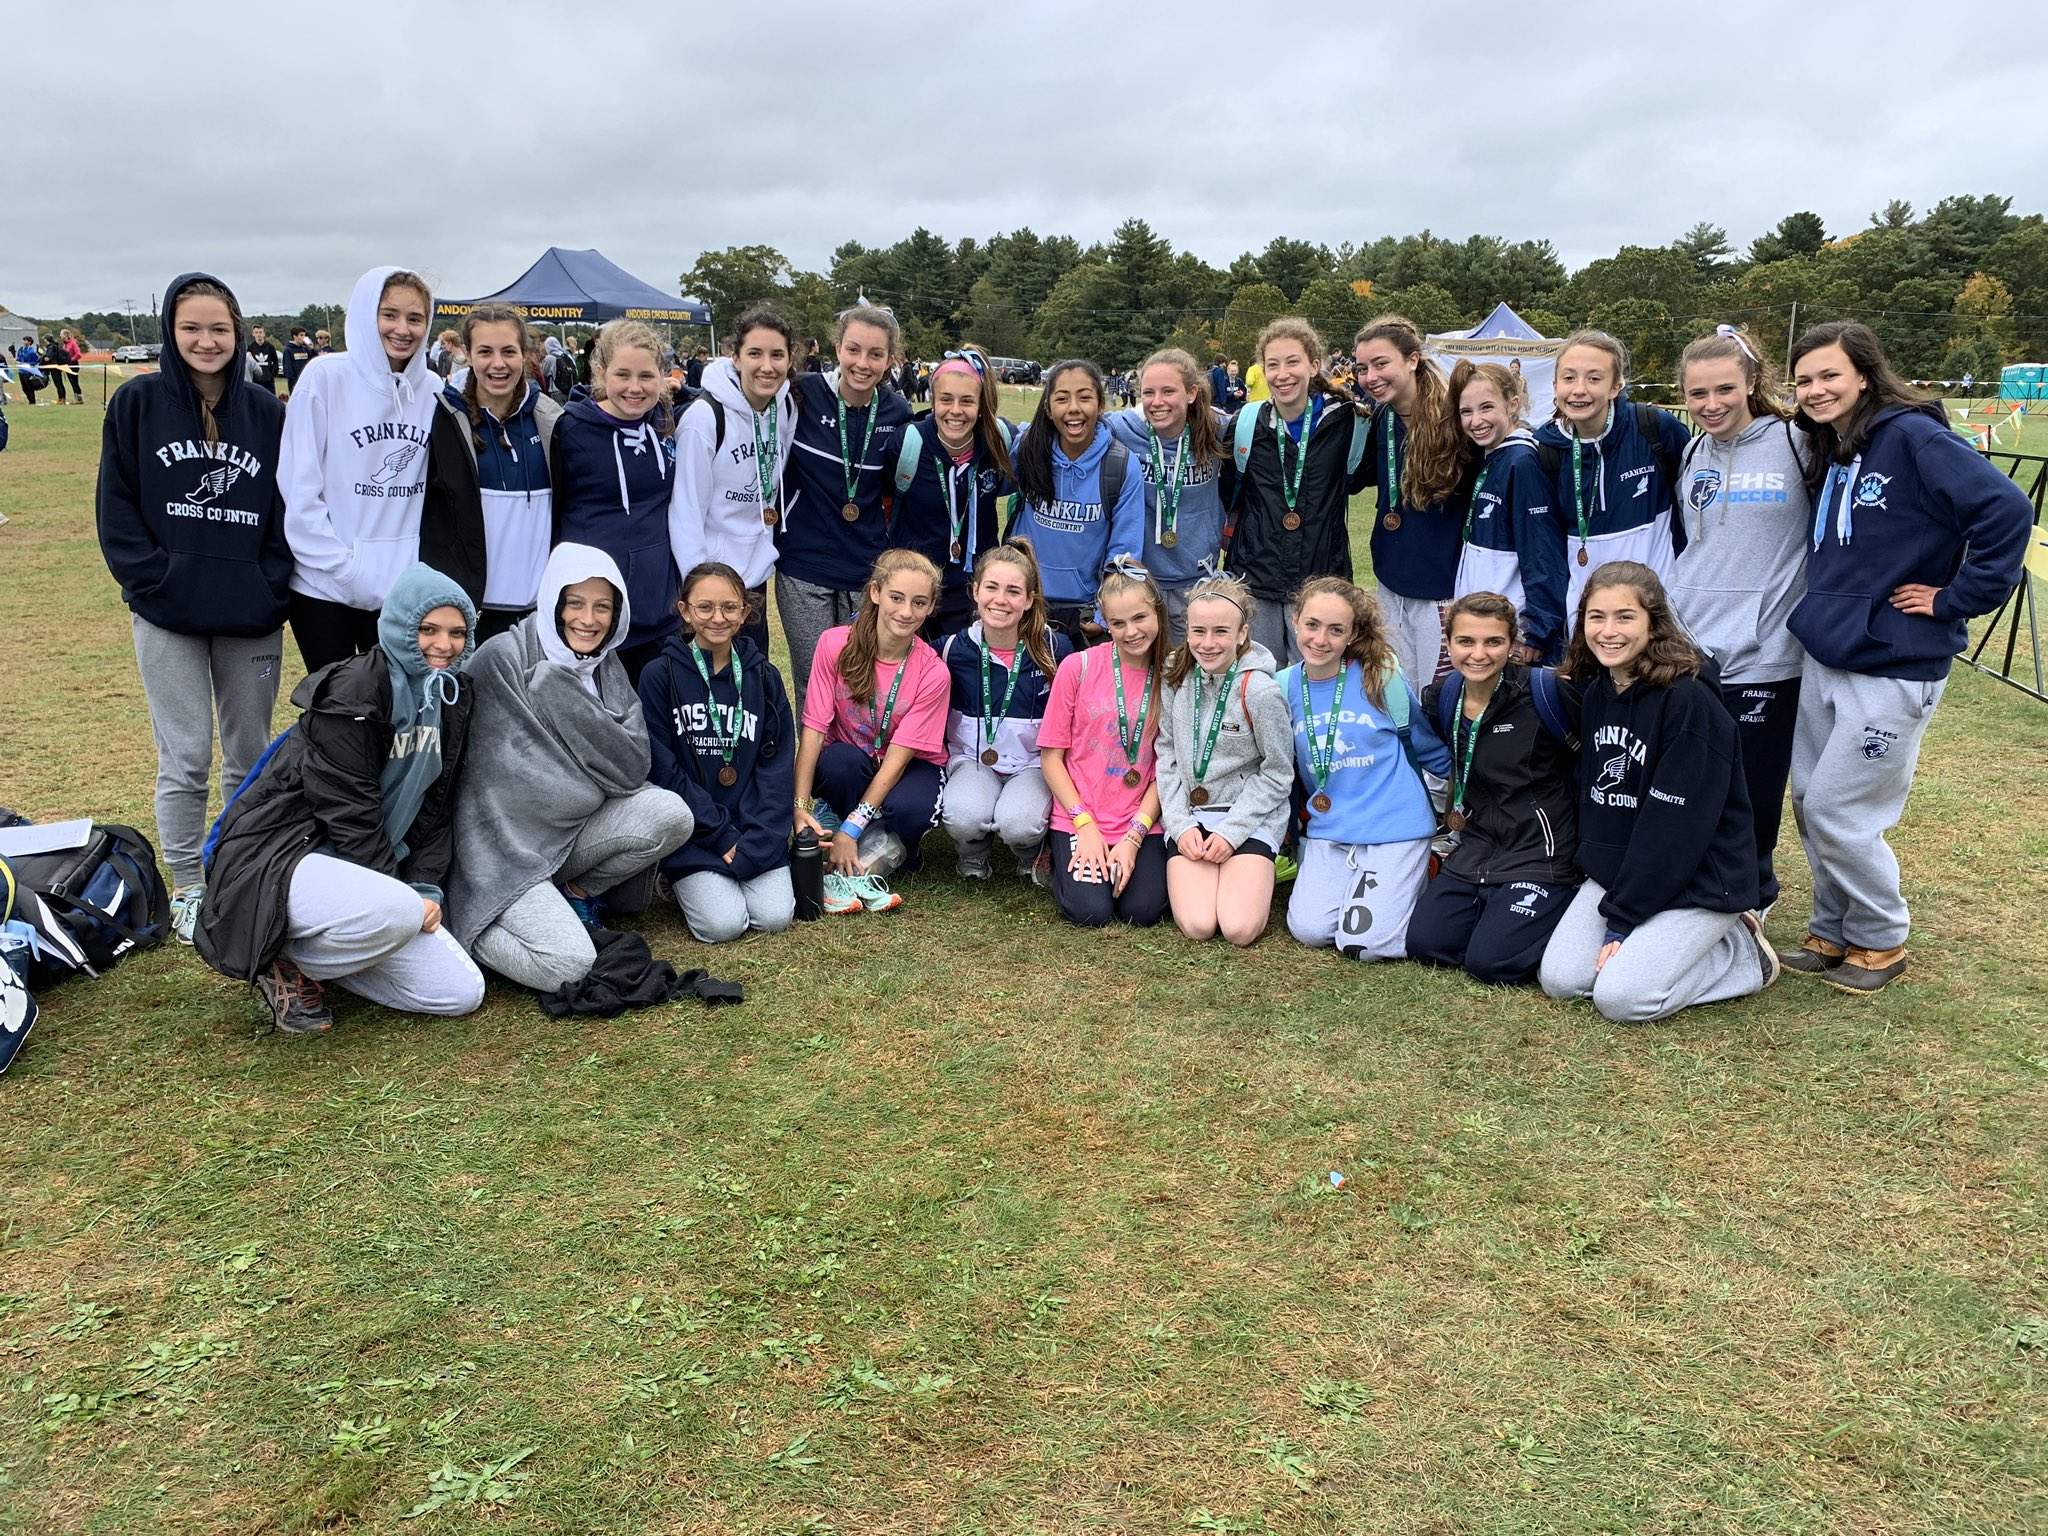 relay cross country meet 10/12/19